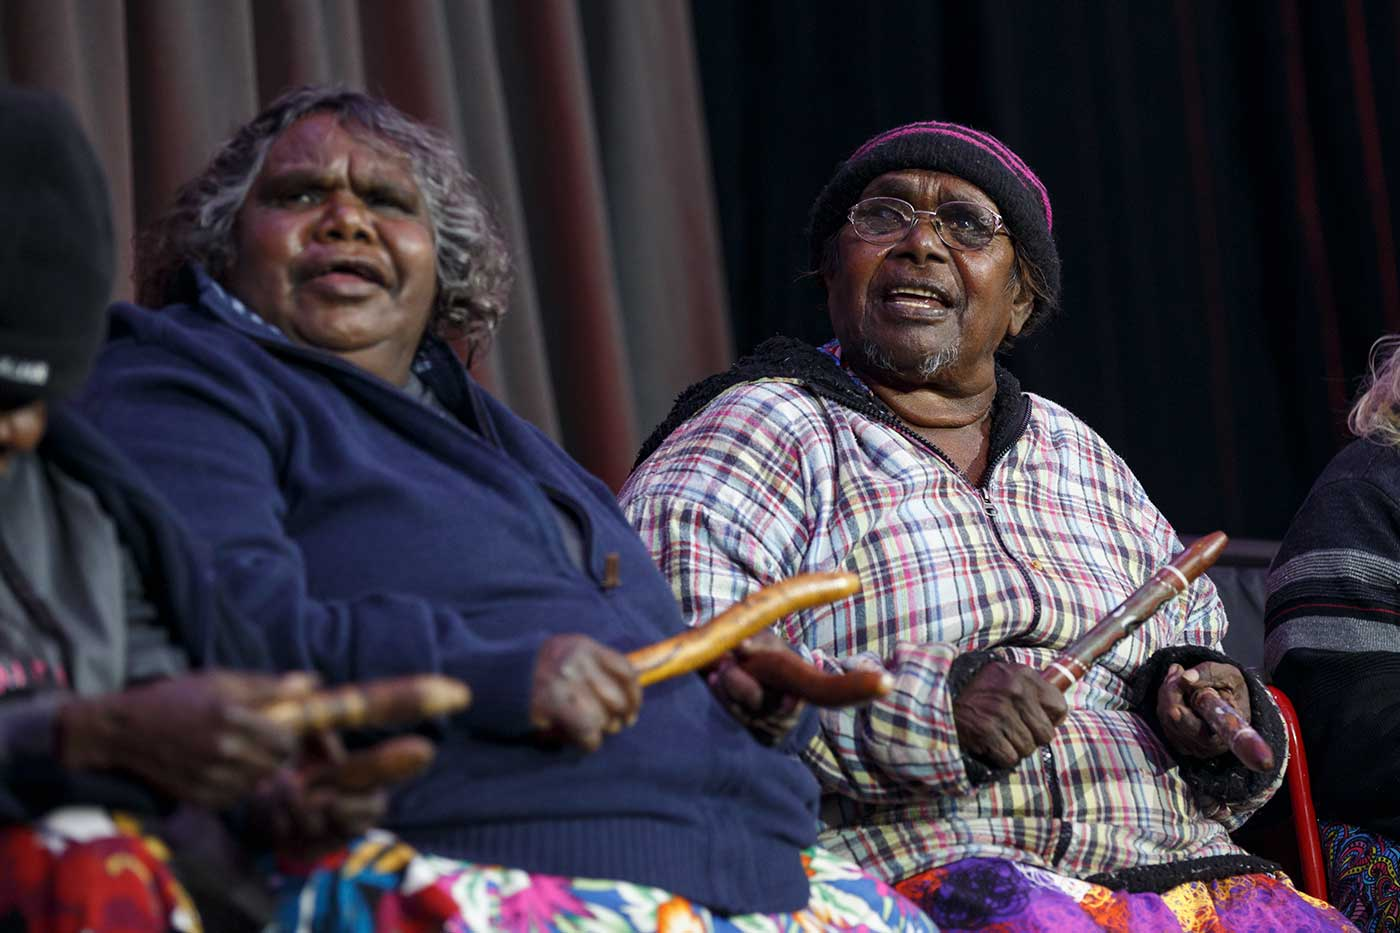 Seated women with wooden clap sticks - click to view larger image